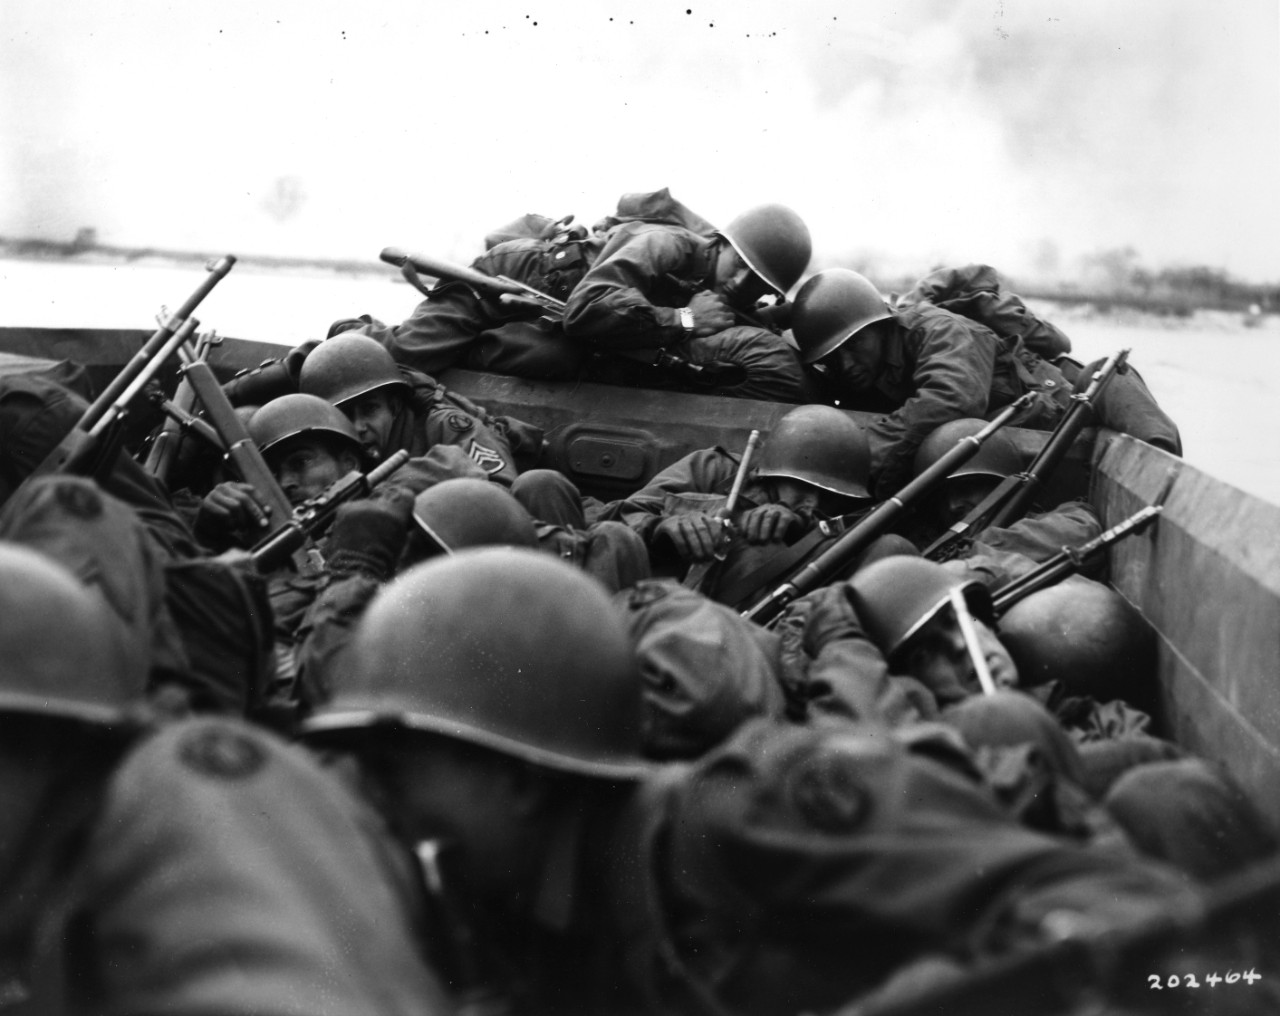 89th Division soldiers crouch low in their crowded assault boat, to escape enemy fire as they cross the Rhine River at Oberwesel, Germany, 26 March 1945. Note 89th Division insignia on men's shoulders, and variety of weapons (including M-1 rifles, Thompson submachine gun, and a Browning Automatic Rifle).